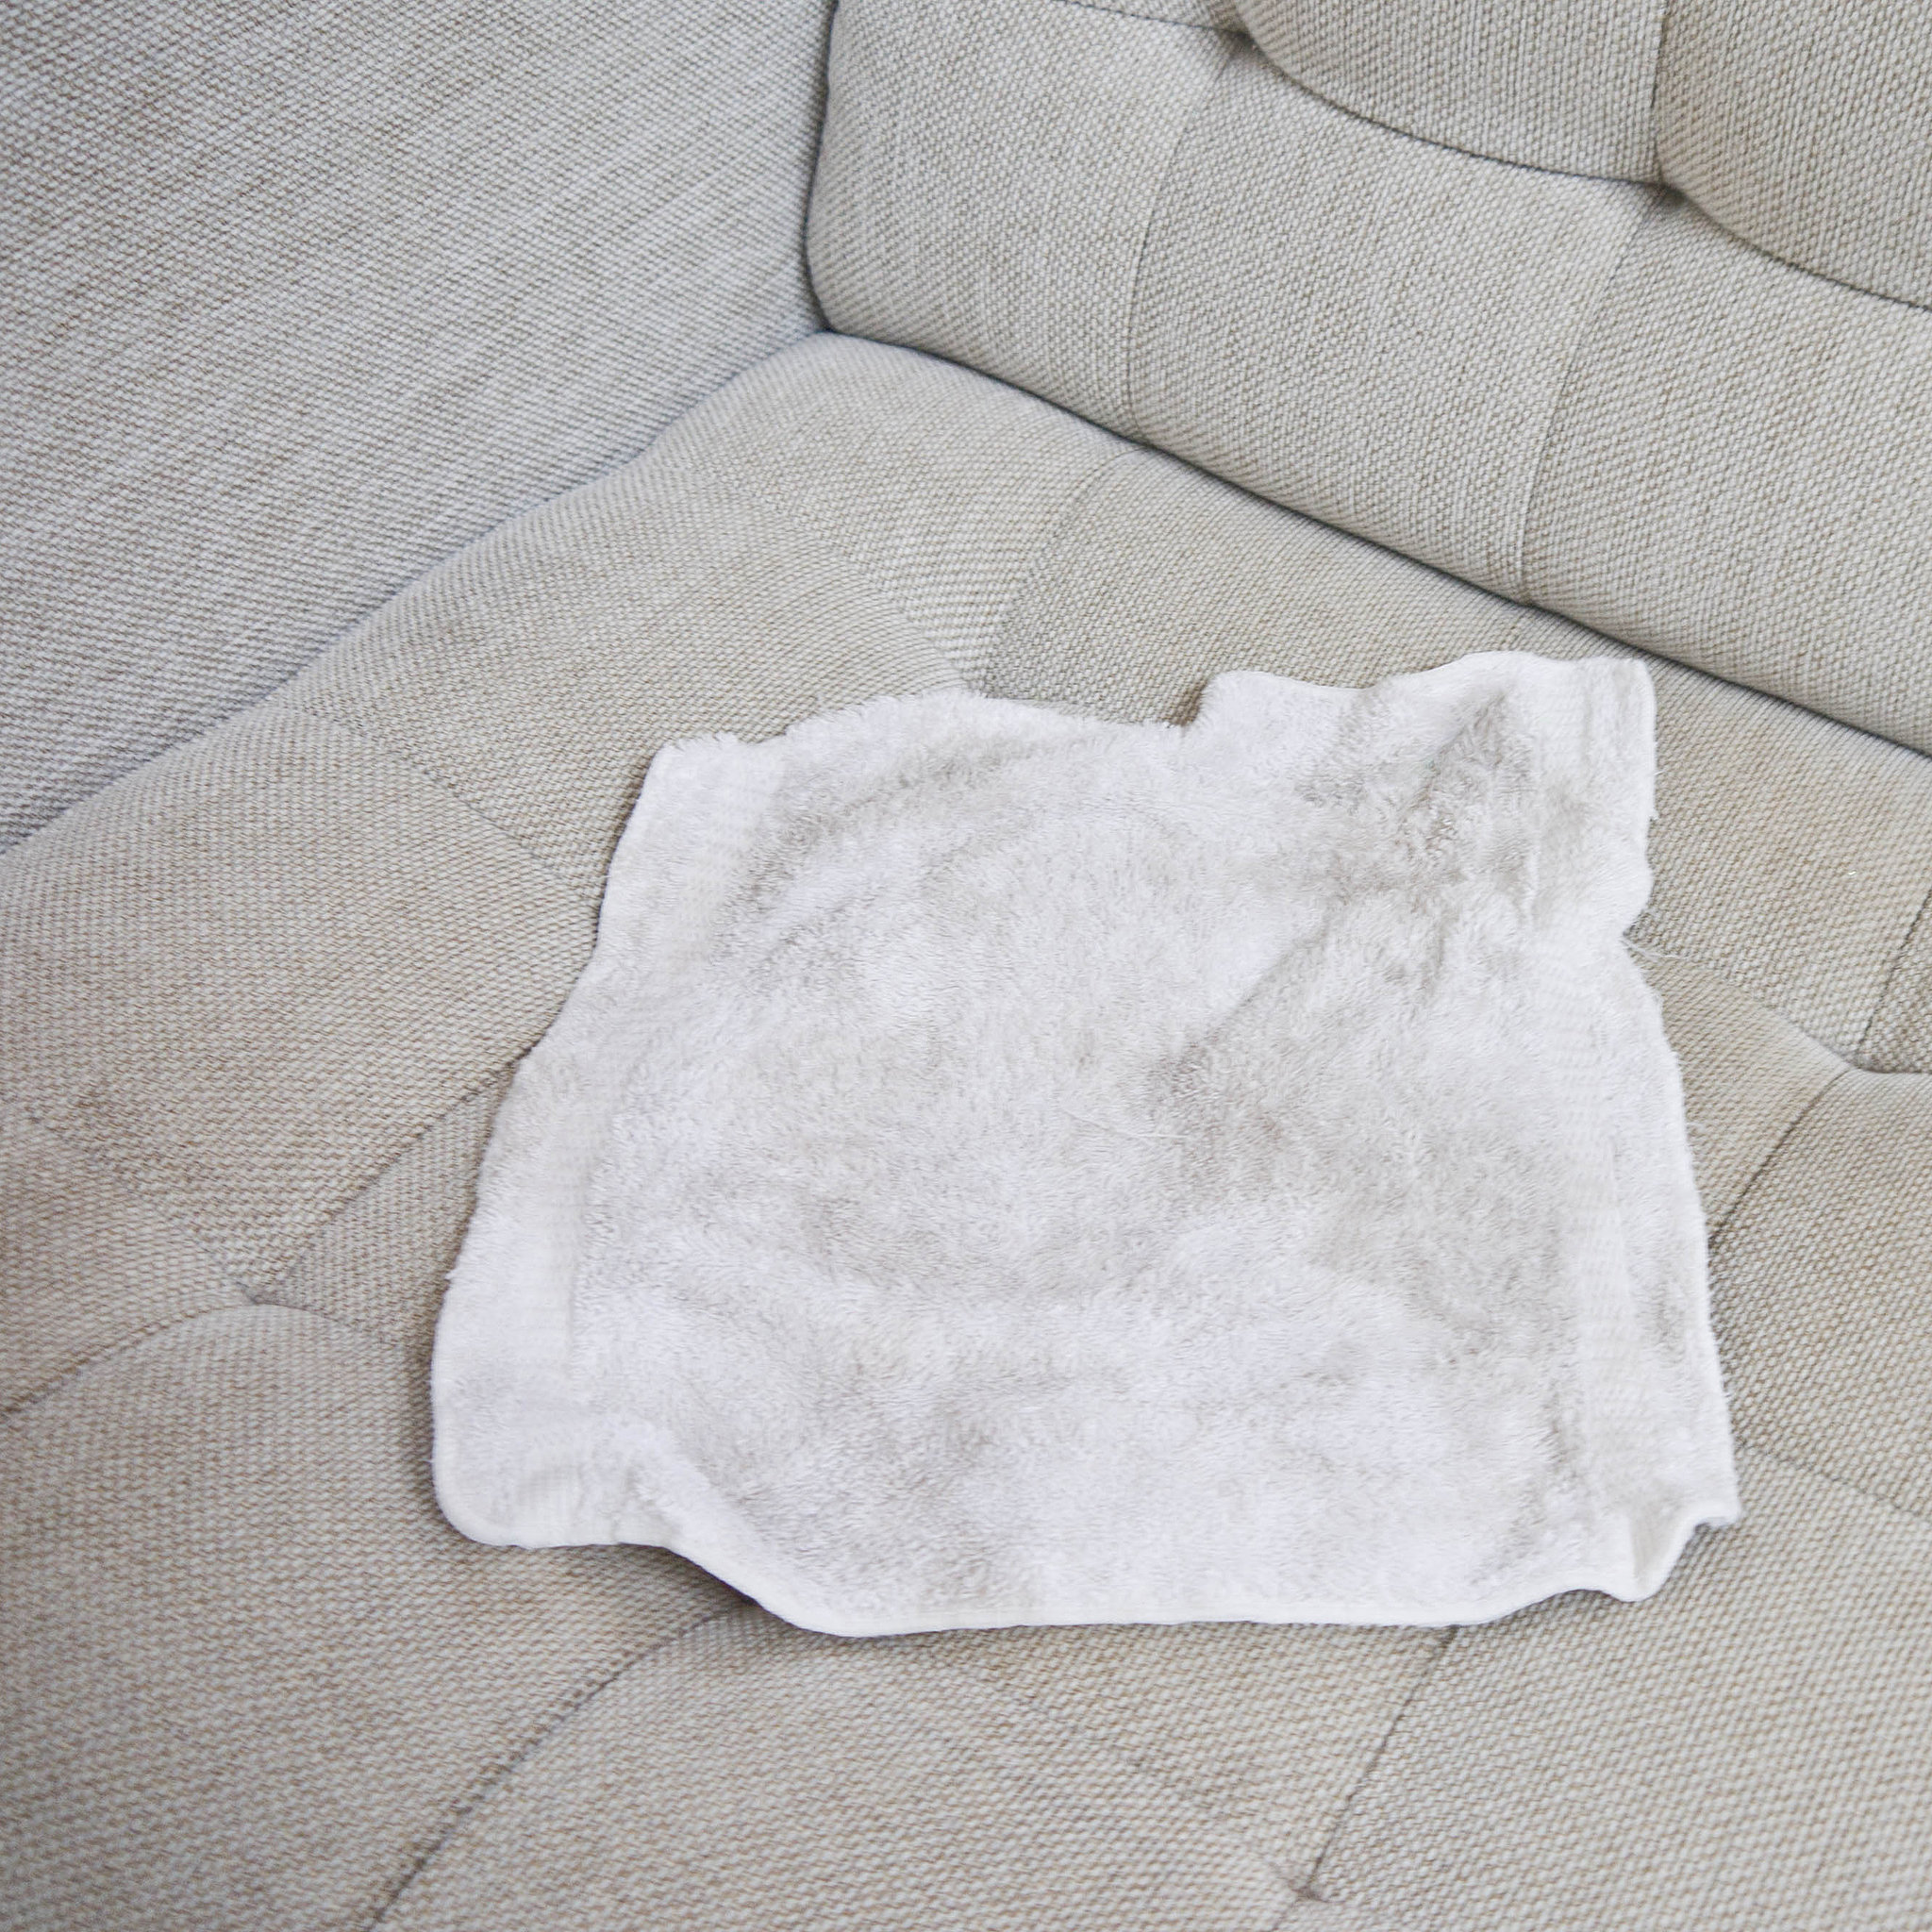 Stains Begone : homemade-couches - designwebi.com